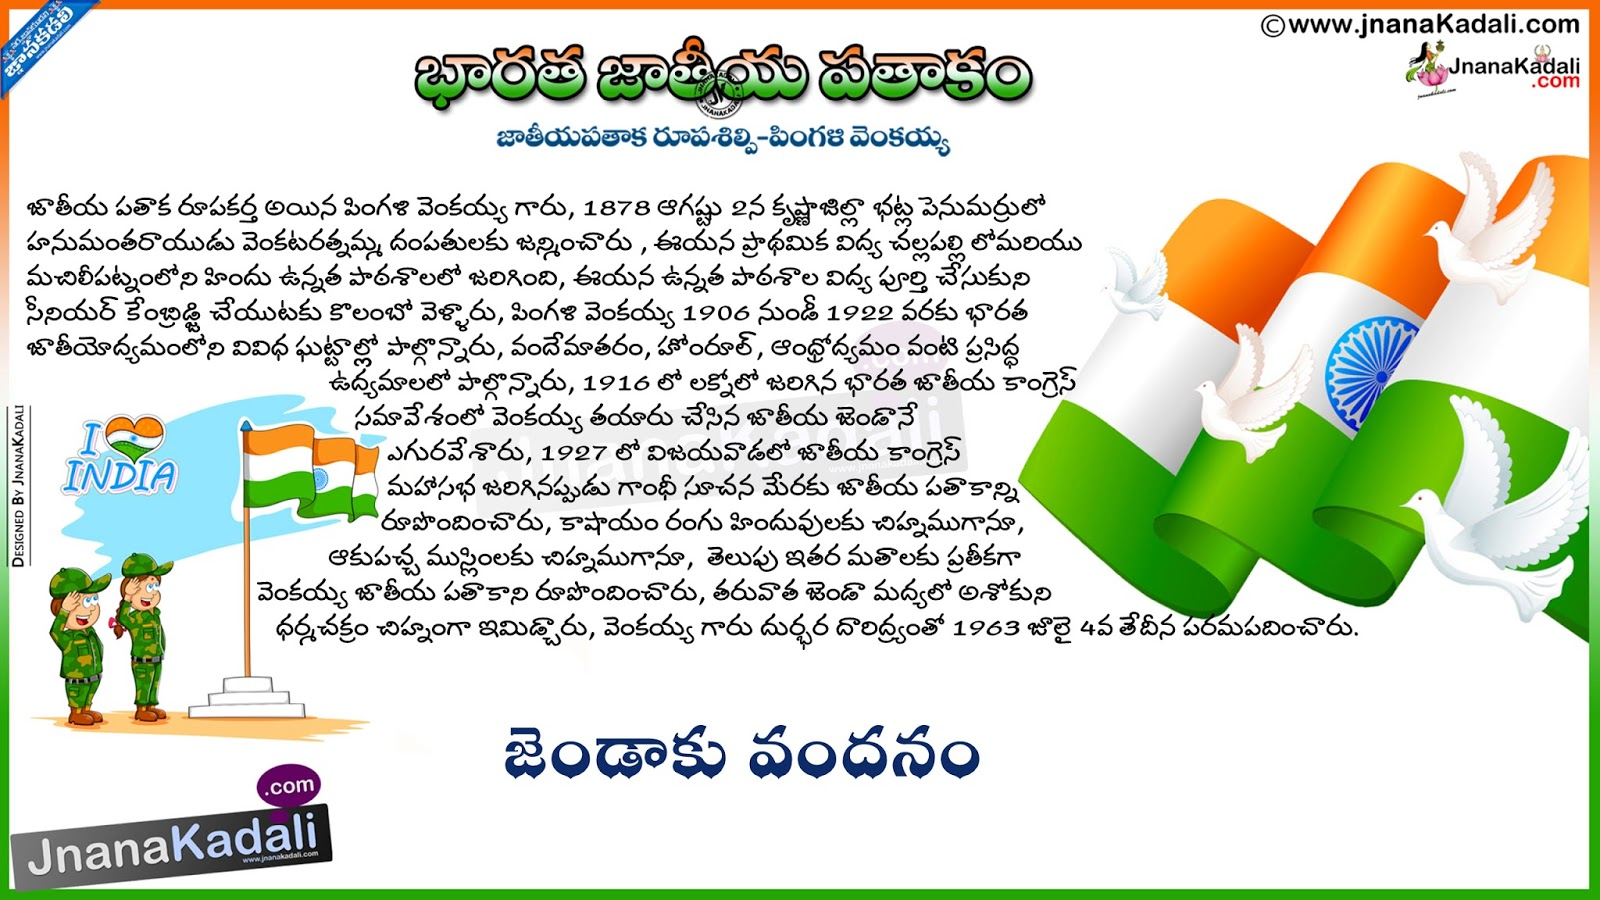 essay writing on independence day of india in telugu Free essays on independence day speeches in telugu get help with your writing independence day essay in telugu independence day of india telugu.